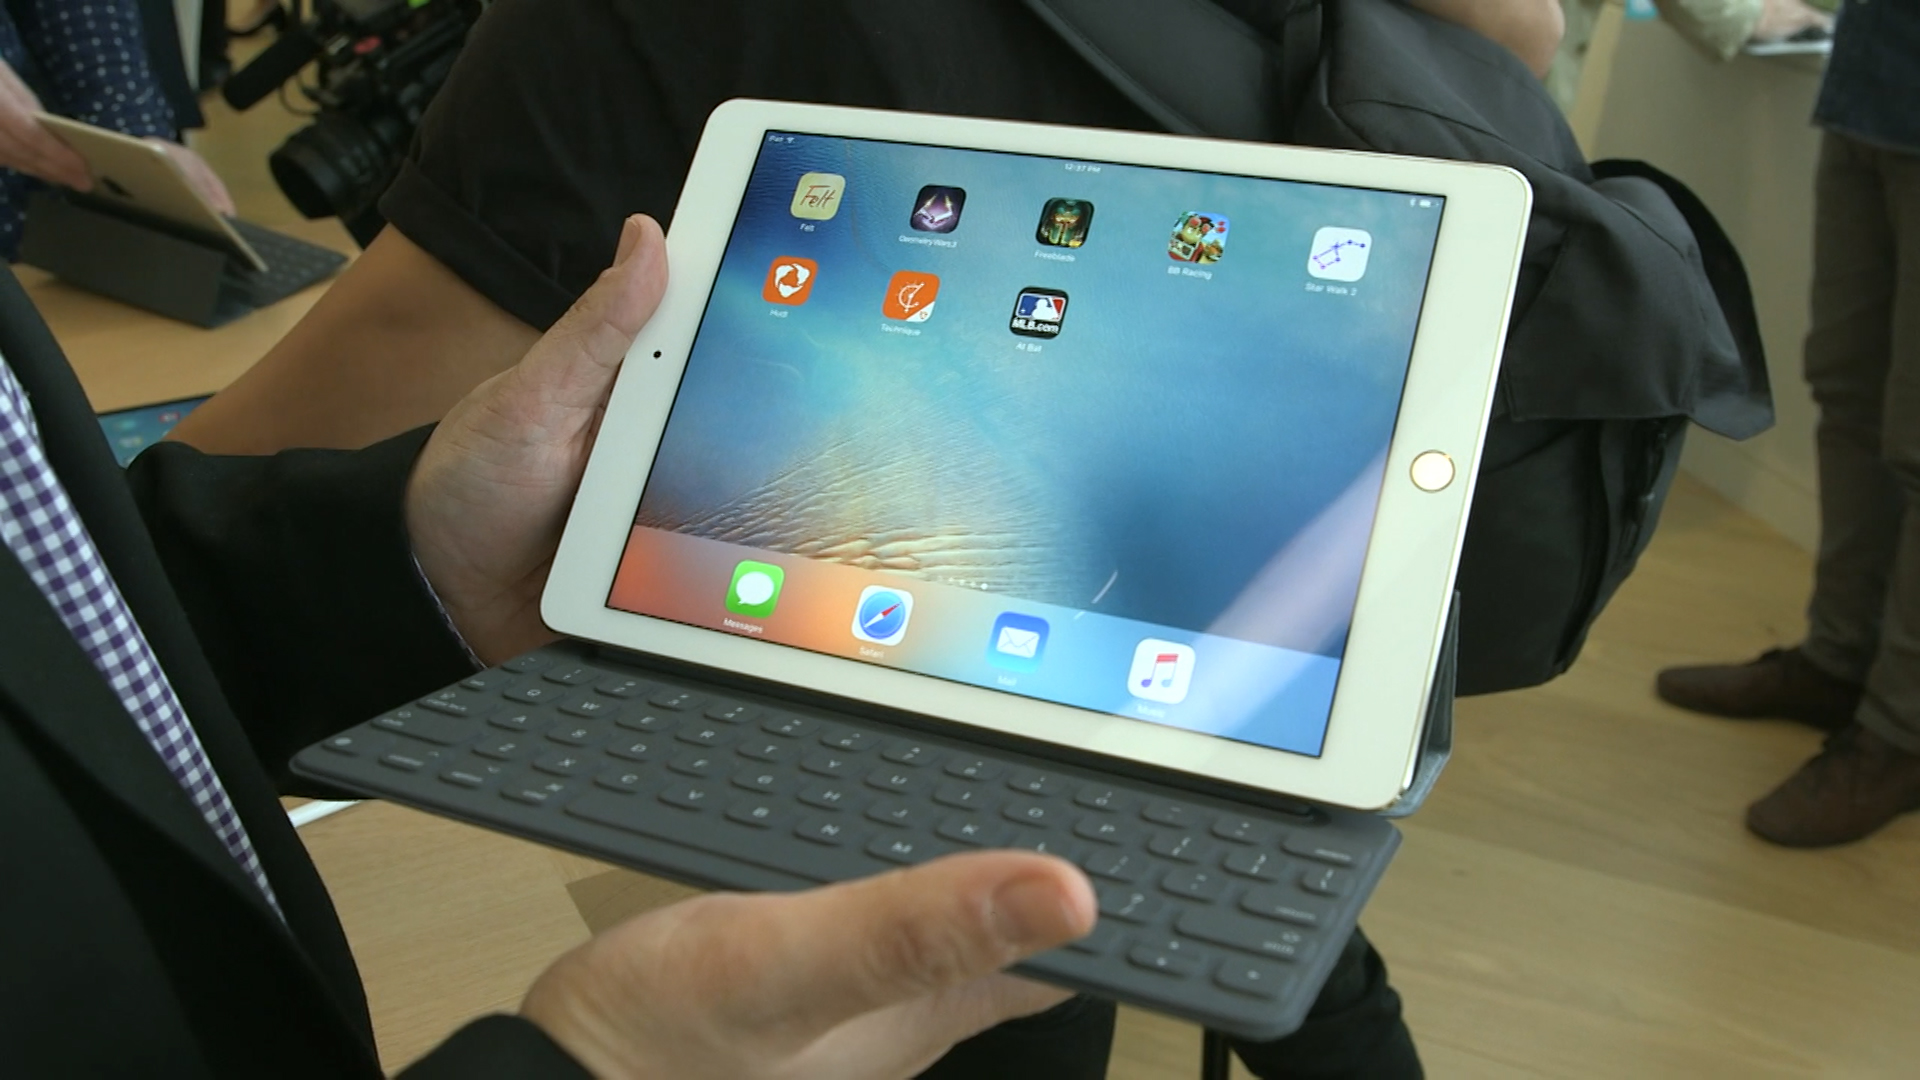 Video: Hands-on with the 9.7-inch iPad Pro